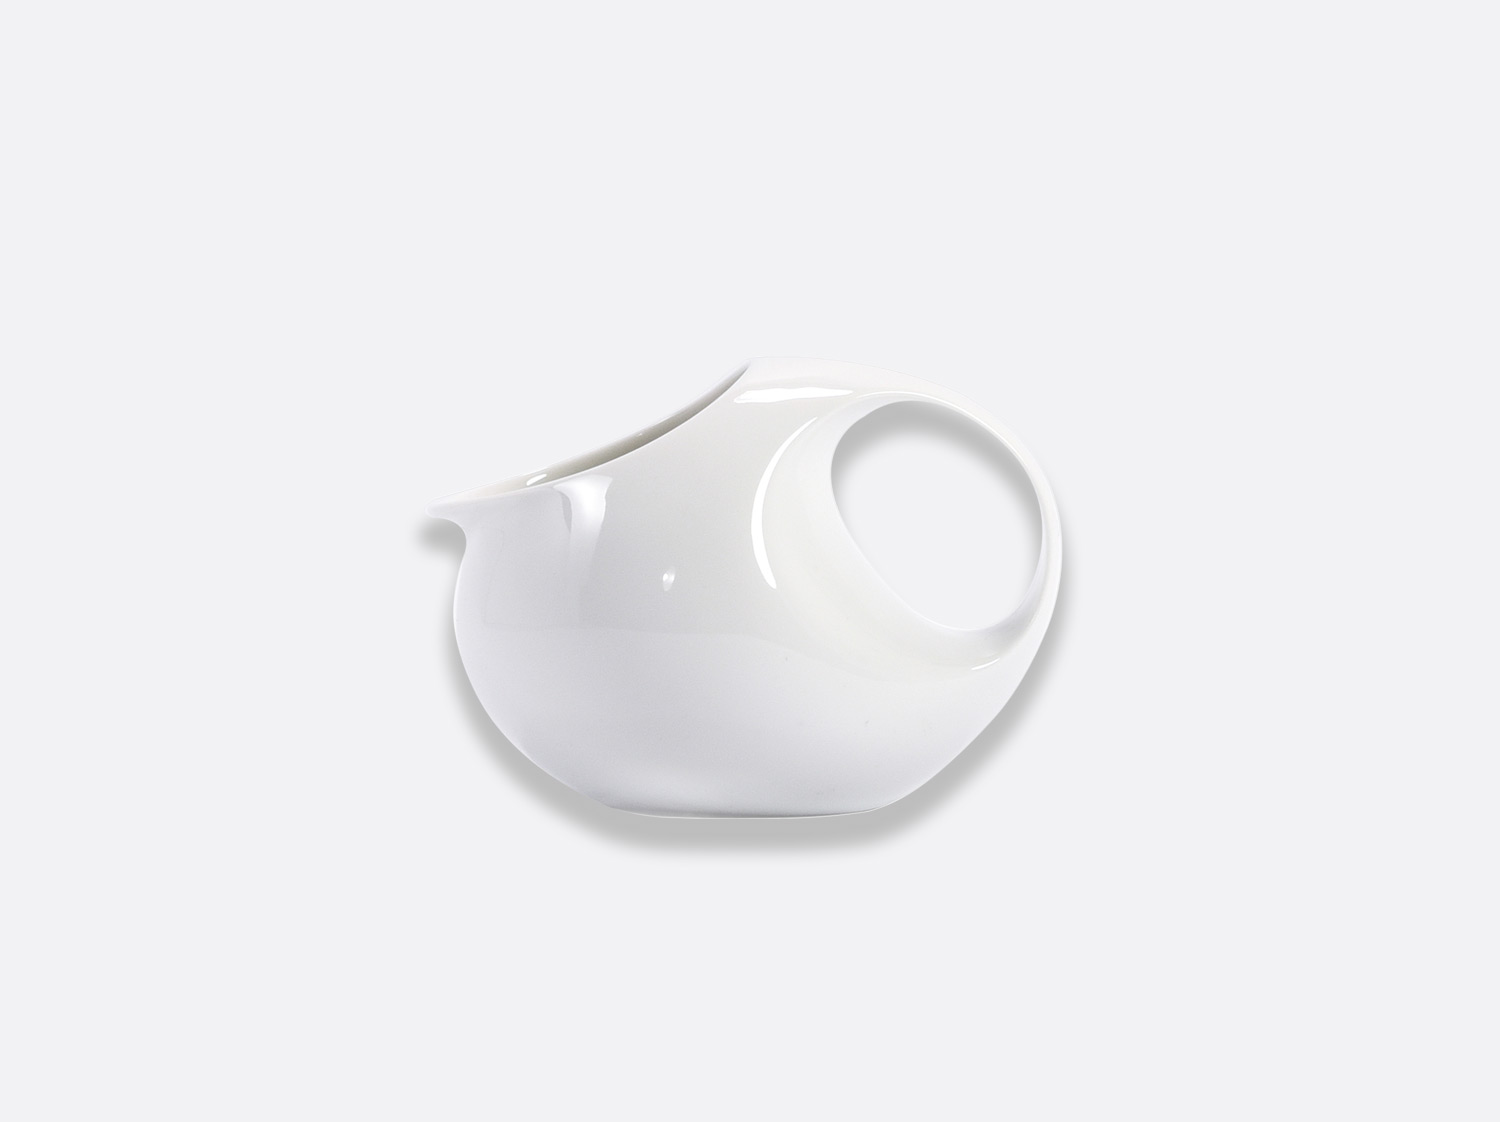 China Gravy boat 13.5 oz of the collection Bulle | Bernardaud